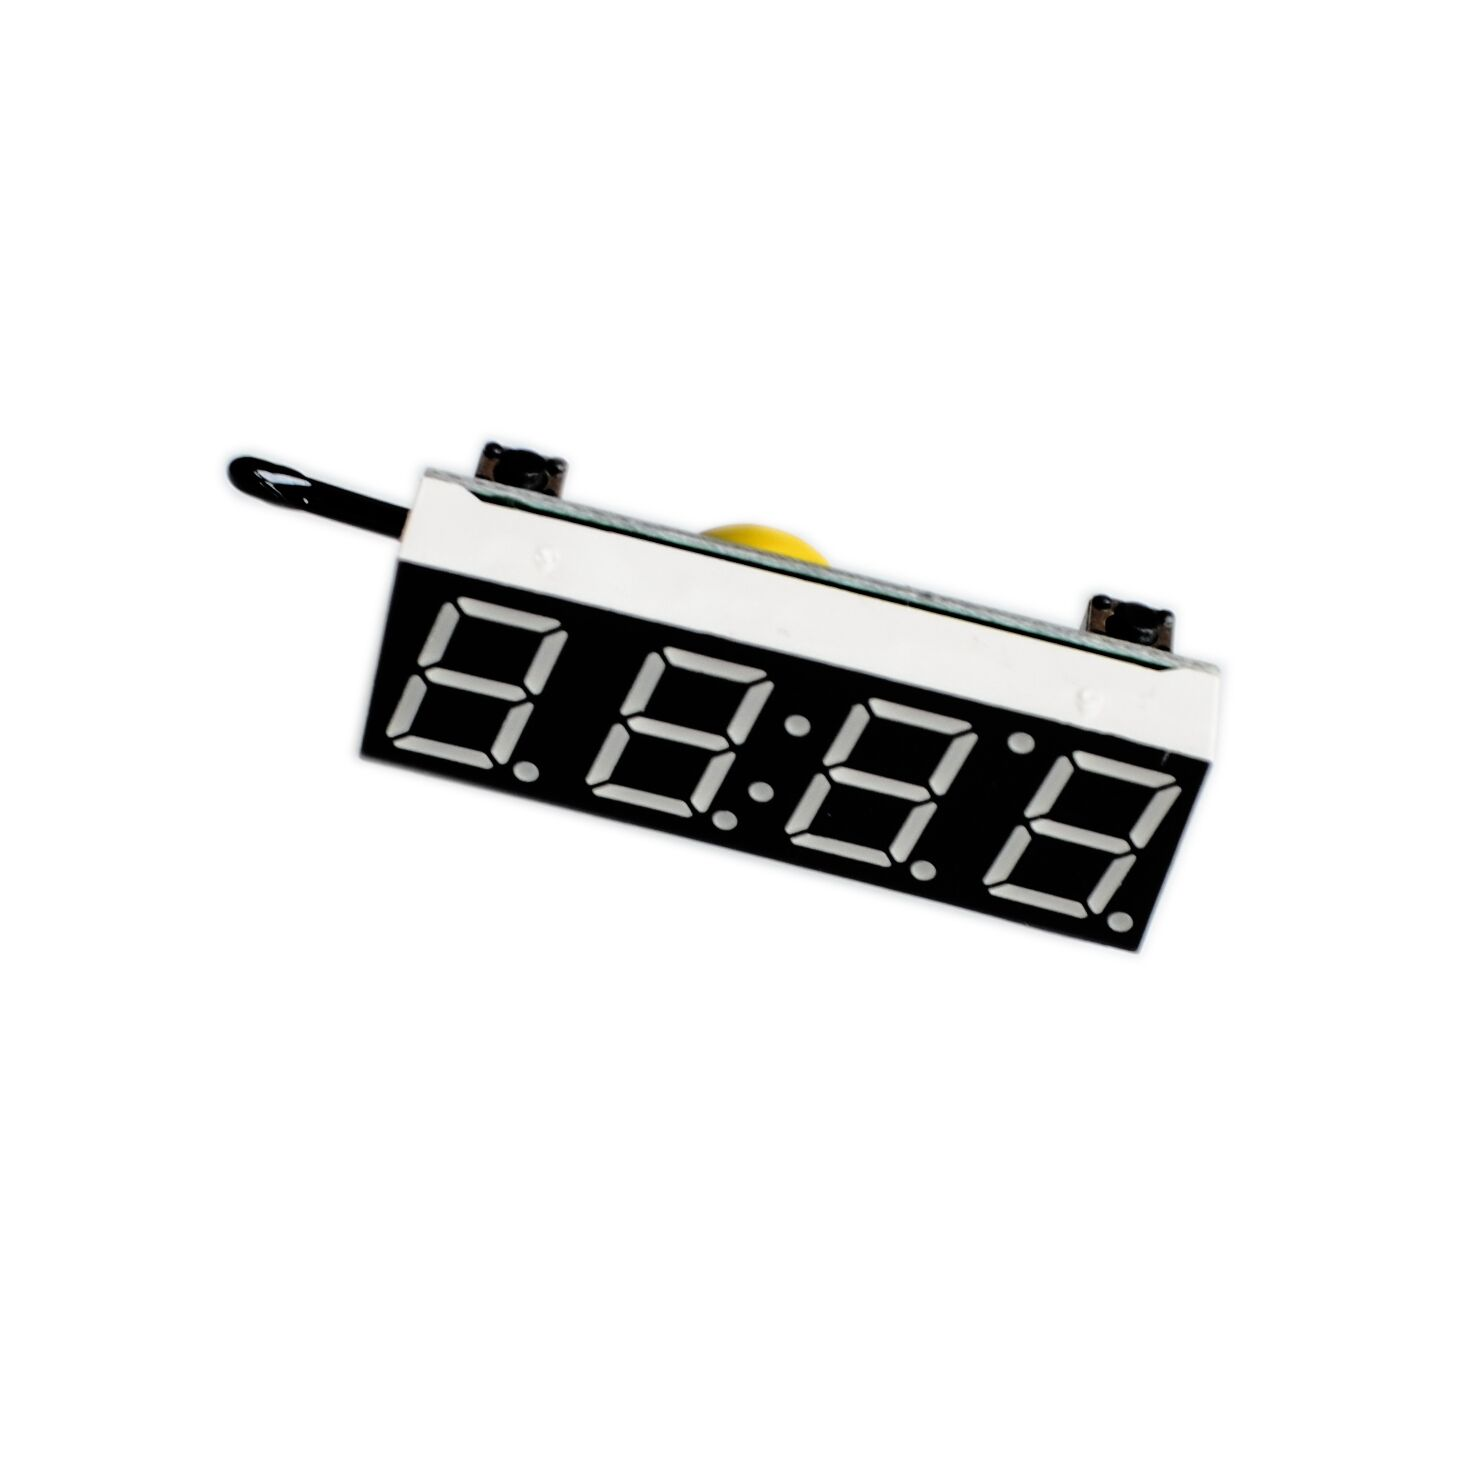 3 in 1 diy digital clock temperature voltage kit r8205 5 30v dc electronic red blue green led